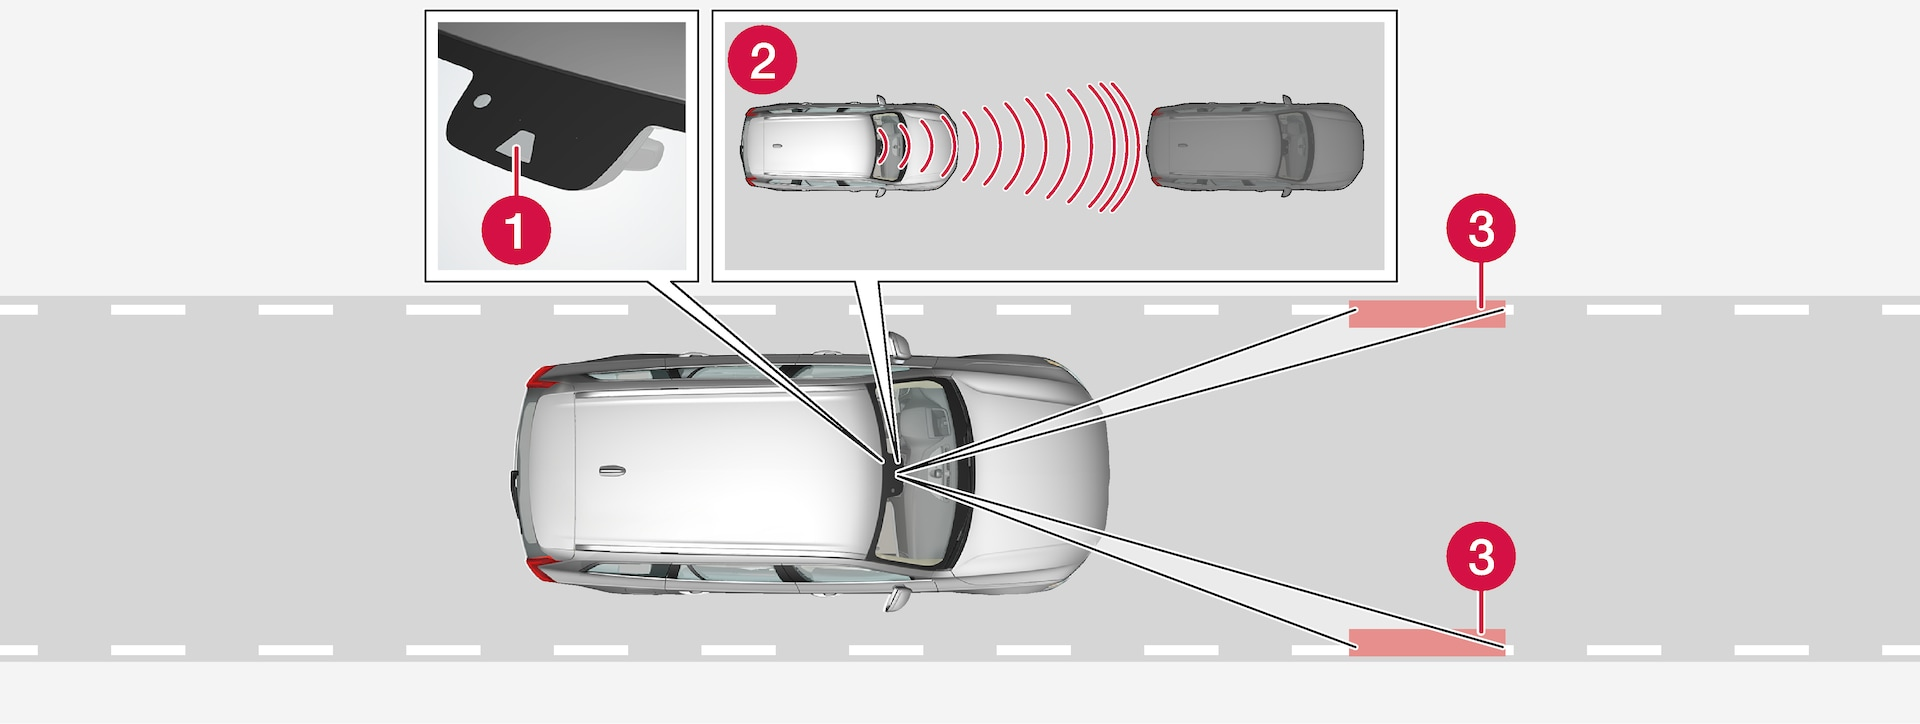 P5-1507-Adaptive Cruise Control, overview detection of vehicle ahead and side markings